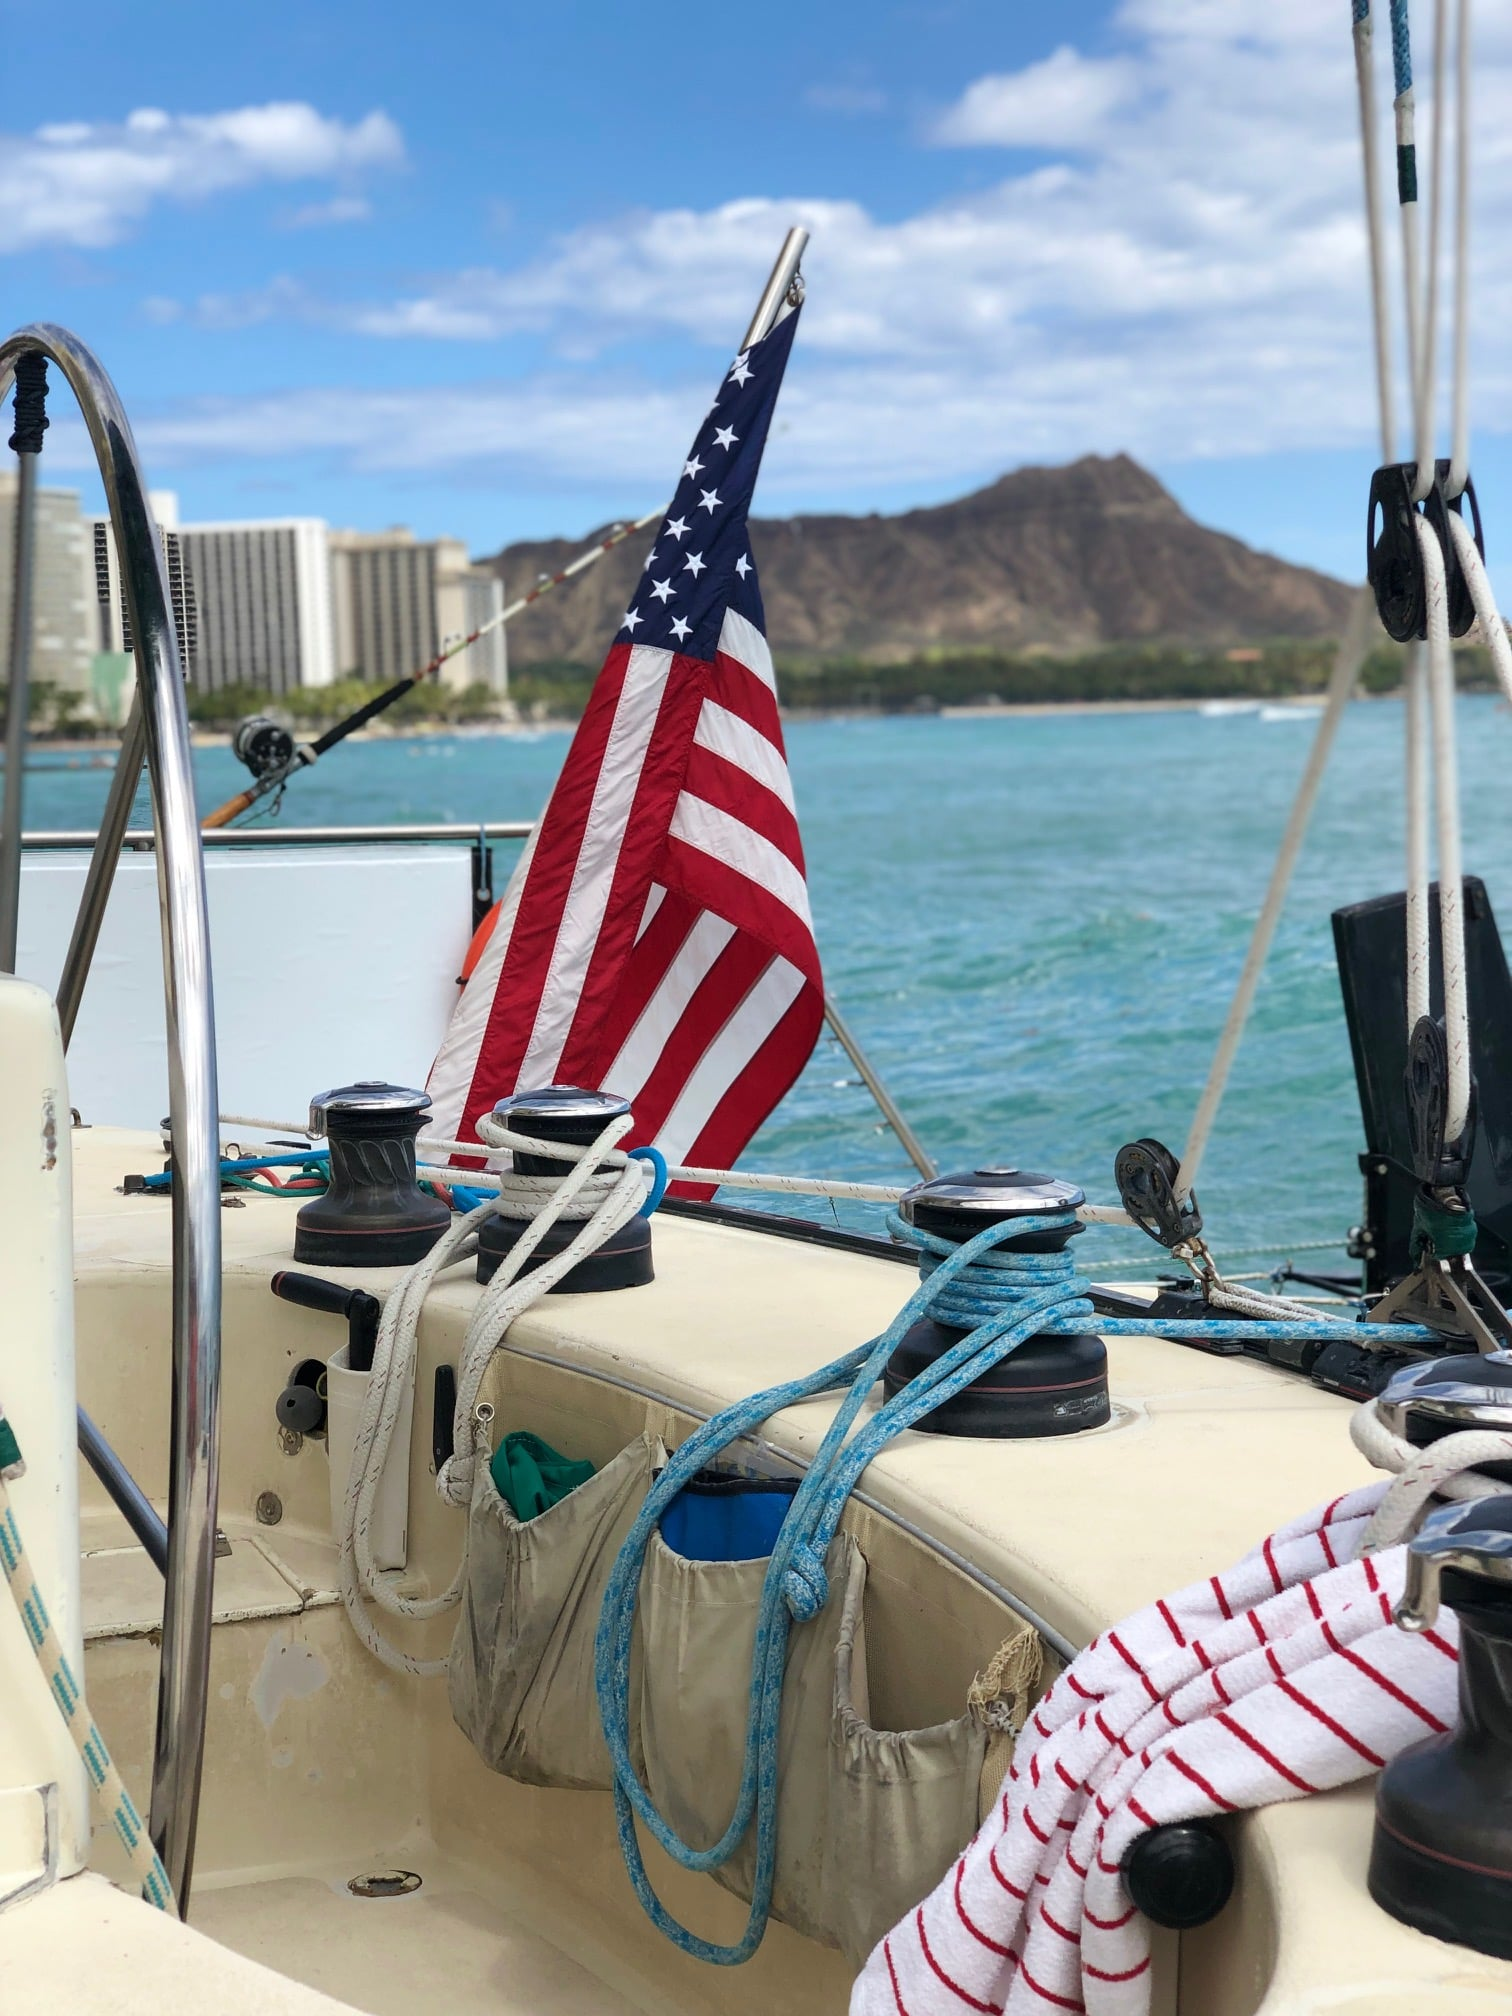 American flag on the back of a boat with Diamond Head Crater in the background.